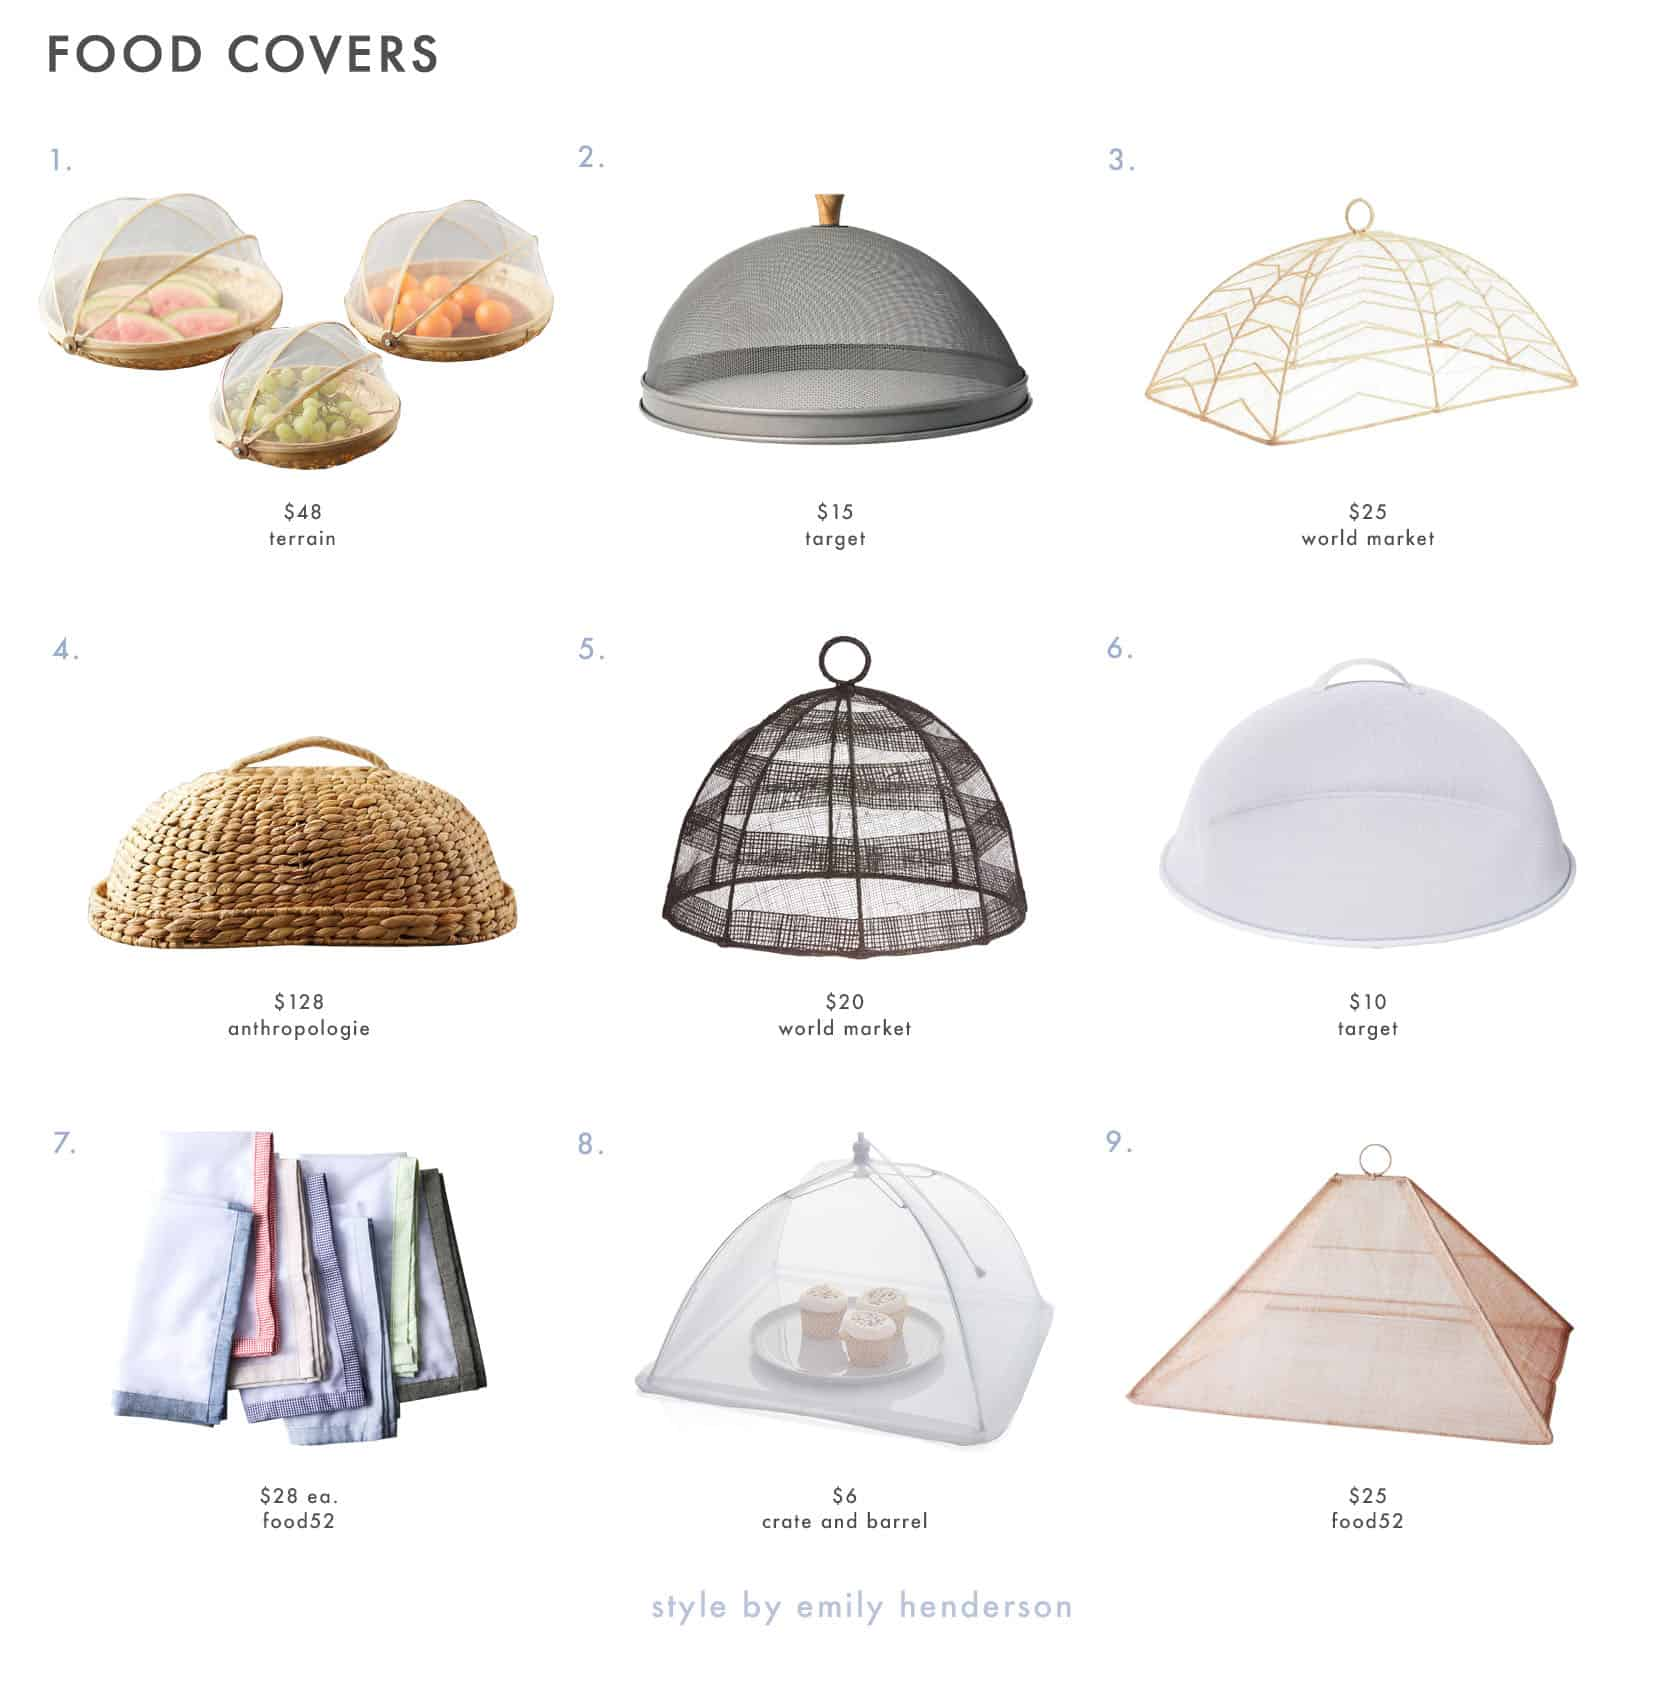 Emily Henderson Outdoor Dining Food Covers